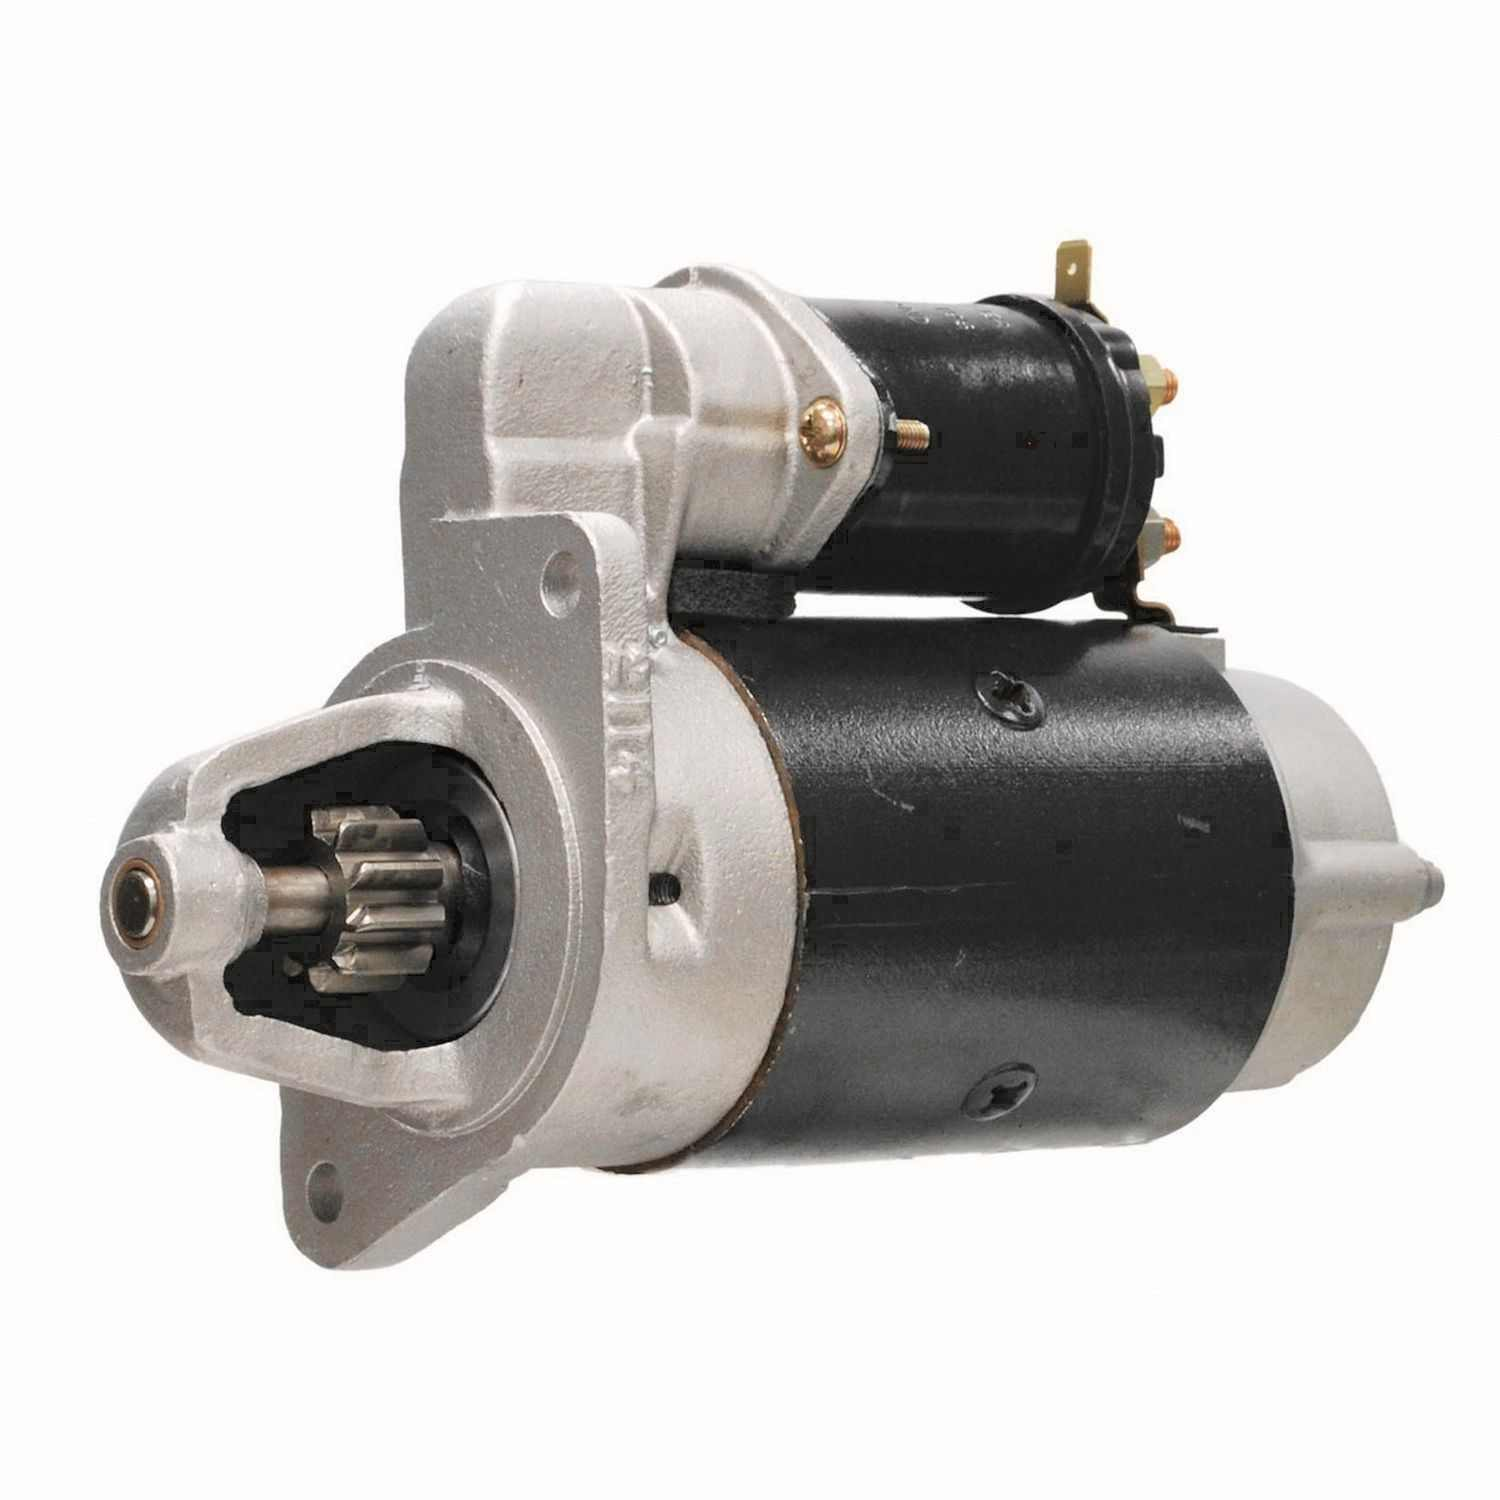 ACDELCO GOLD/PROFESSIONAL - Reman Starter Motor - DCC 336-1243